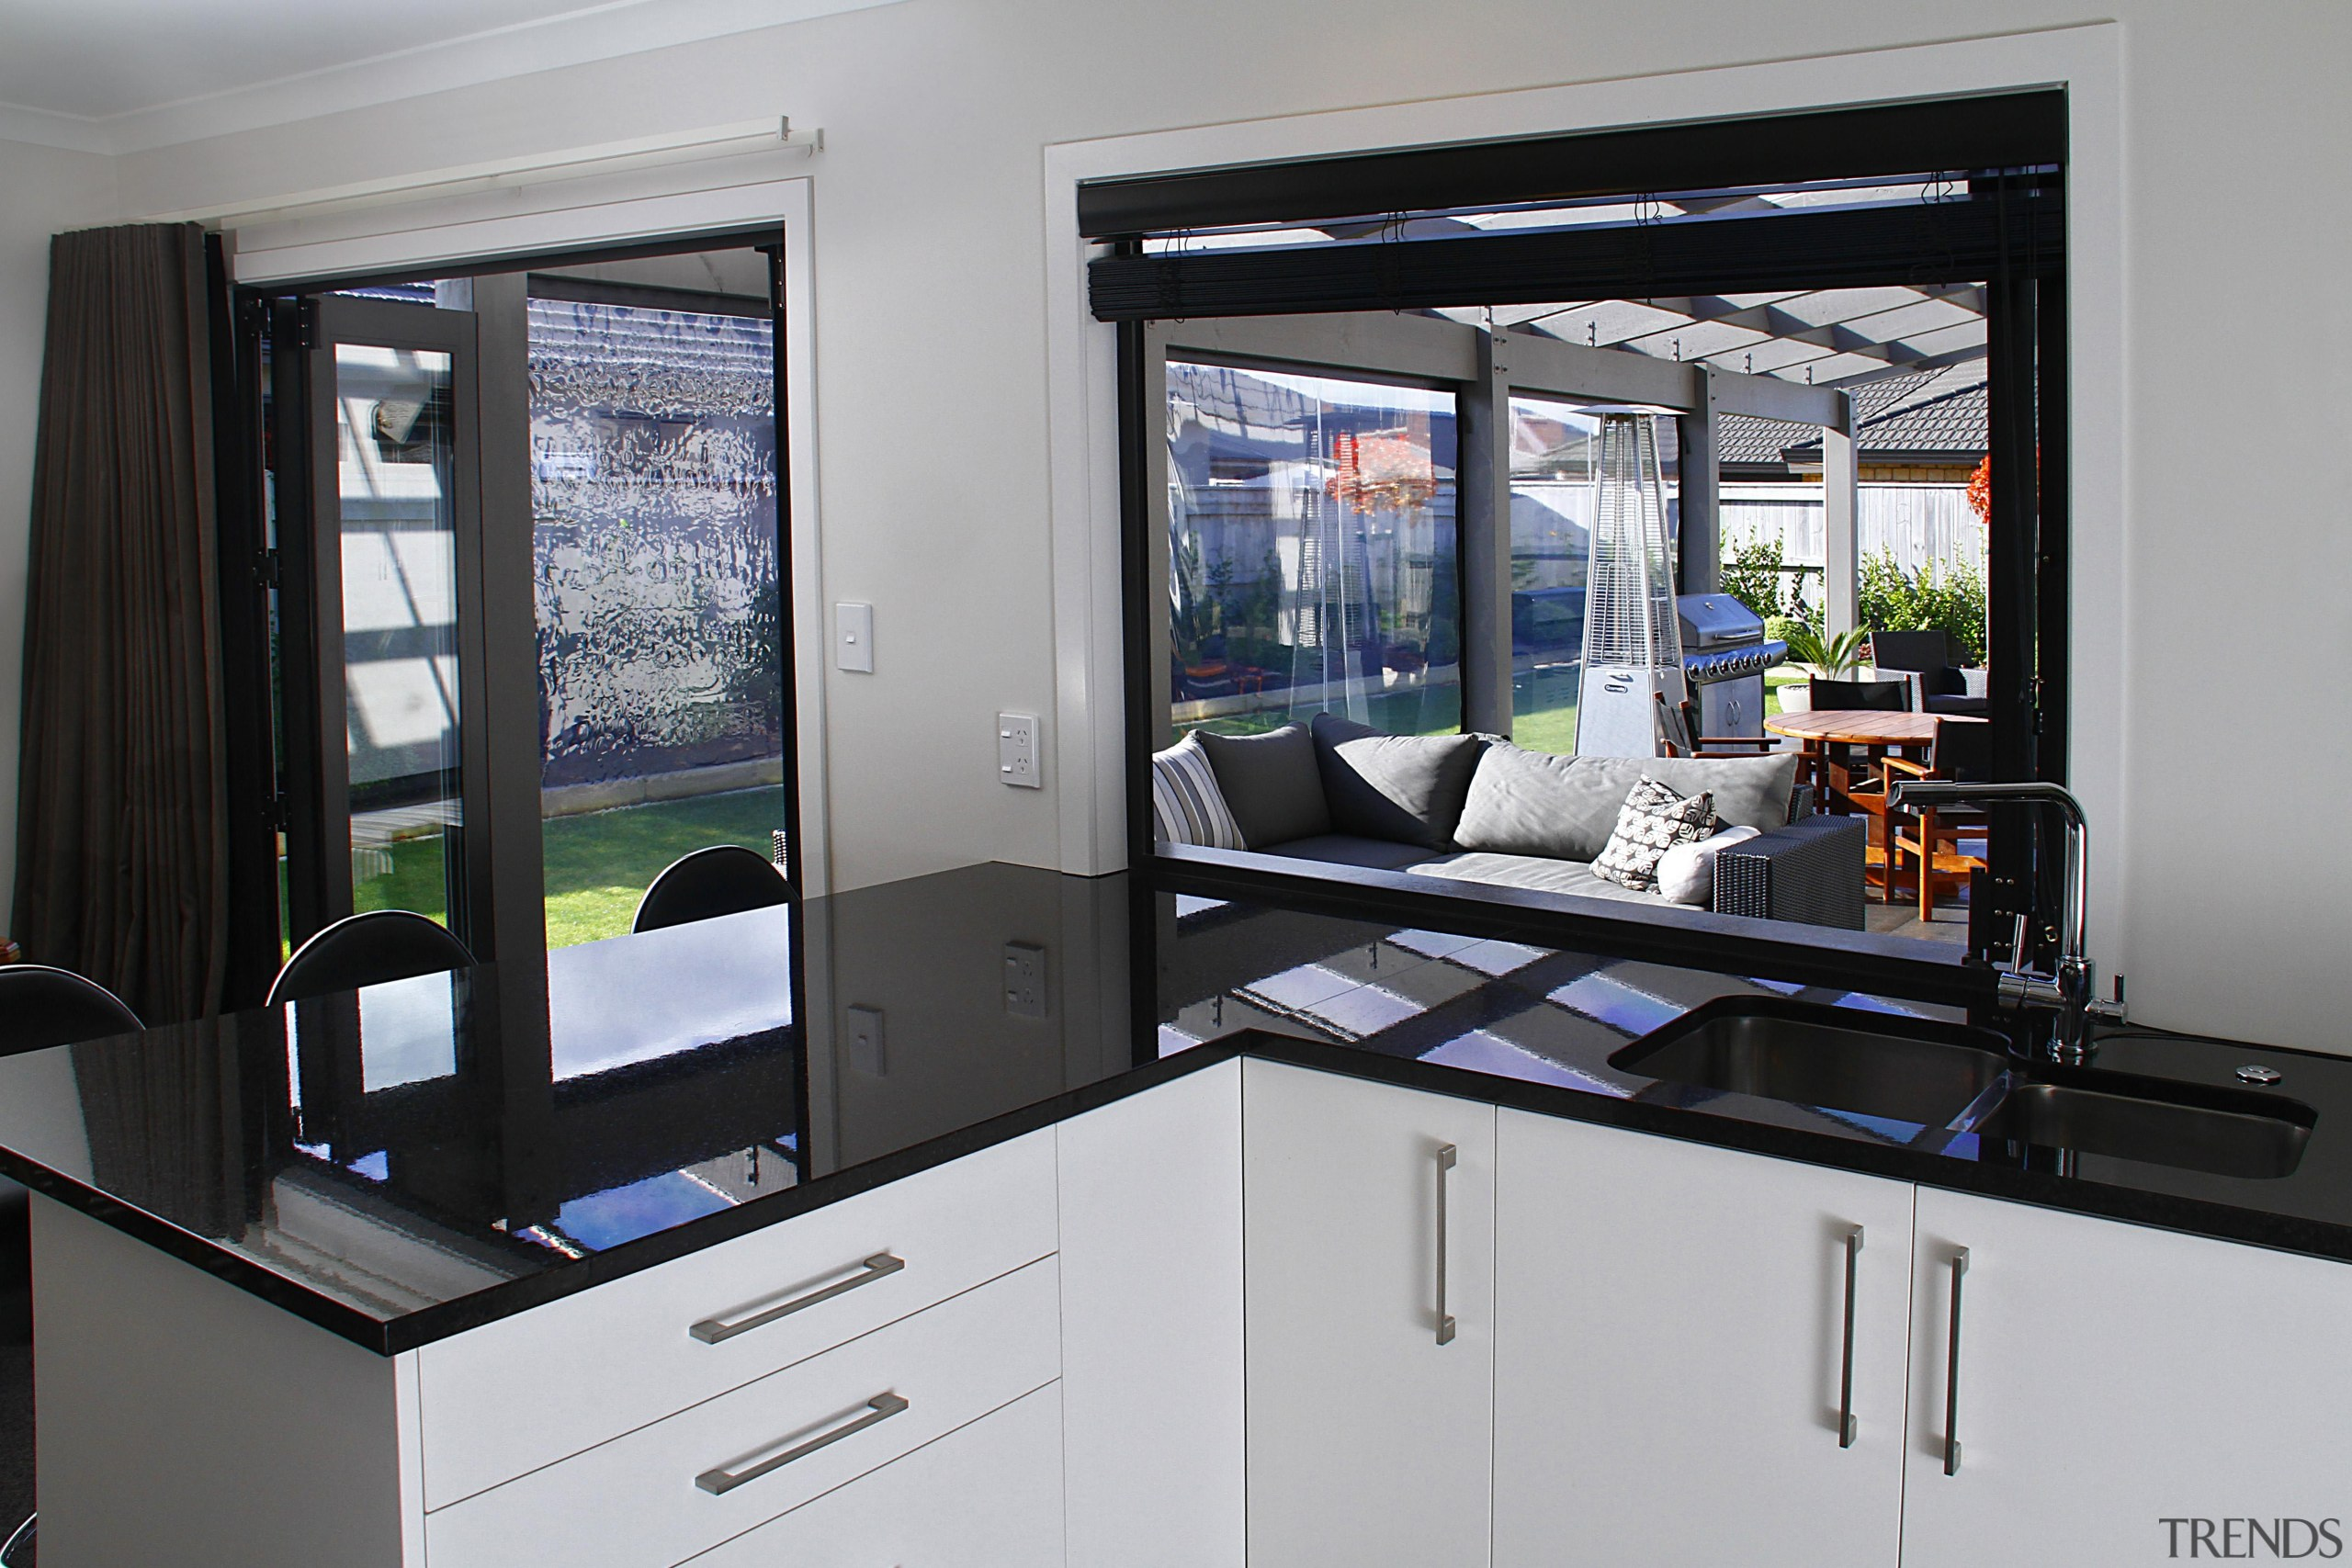 French doors to the outdoor area - home home appliance, kitchen, window, gray, black